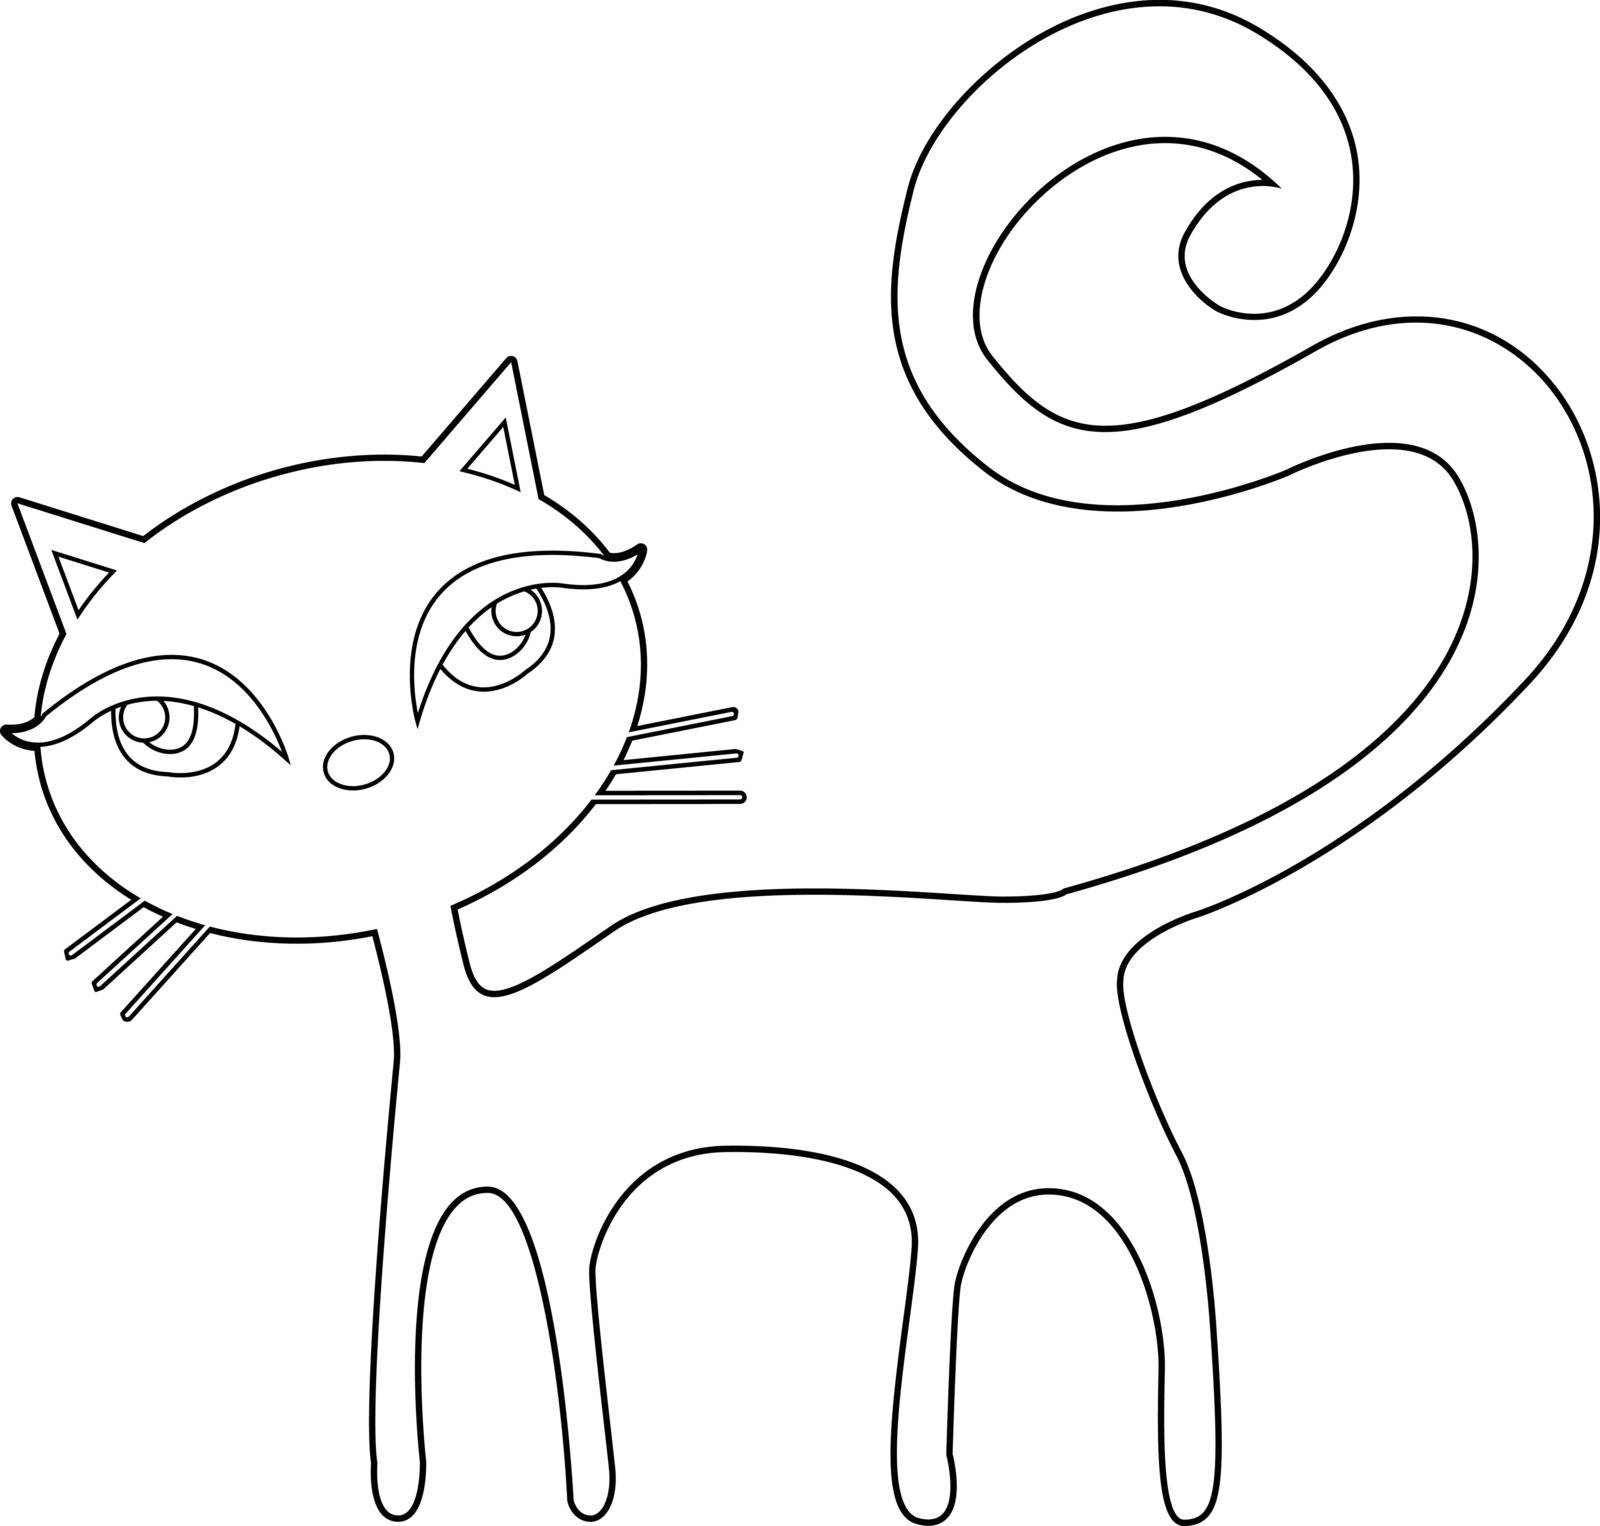 Cat on a white background vector illustration. Illustration of Cartoon Cat. Outline illustration for a coloring book. All in a single layer. - vector illustration